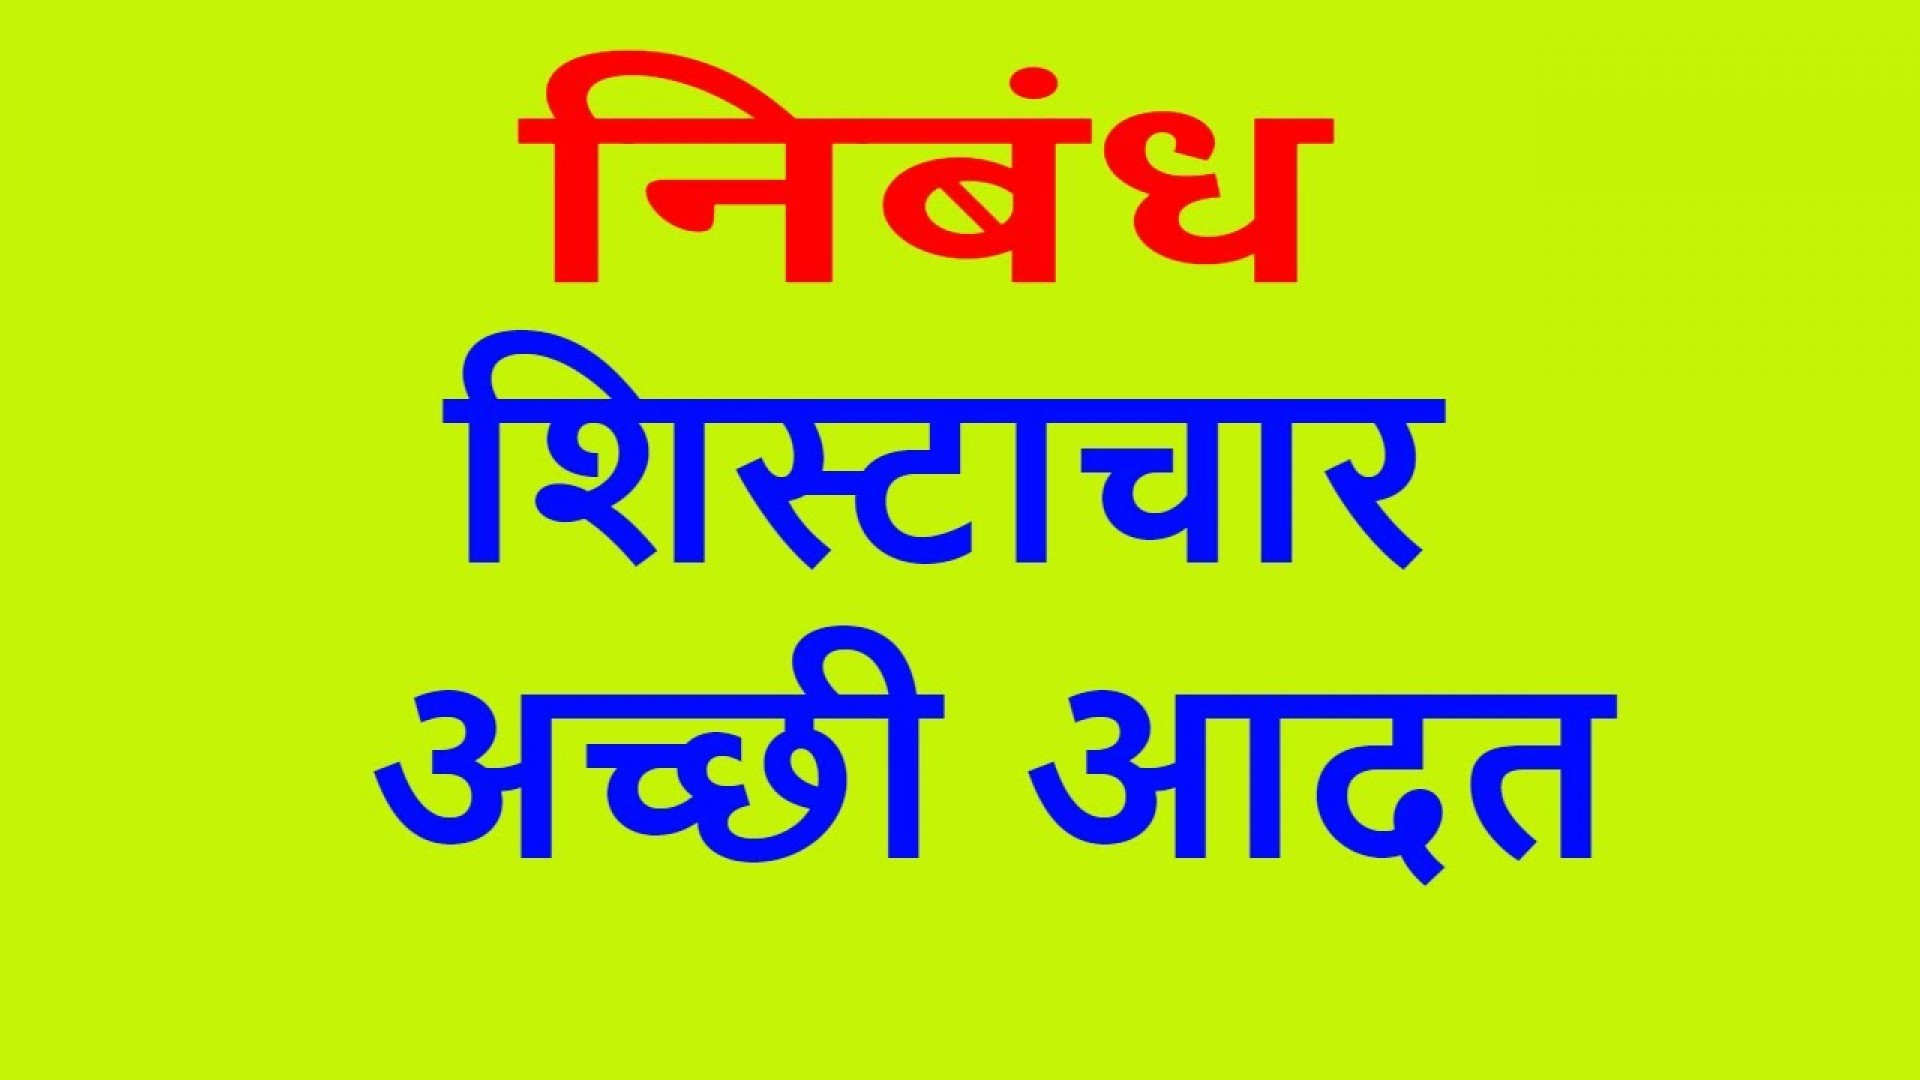 017 Maxresdefault Essay Example Good Habits In Exceptional Hindi Food Habit 1920